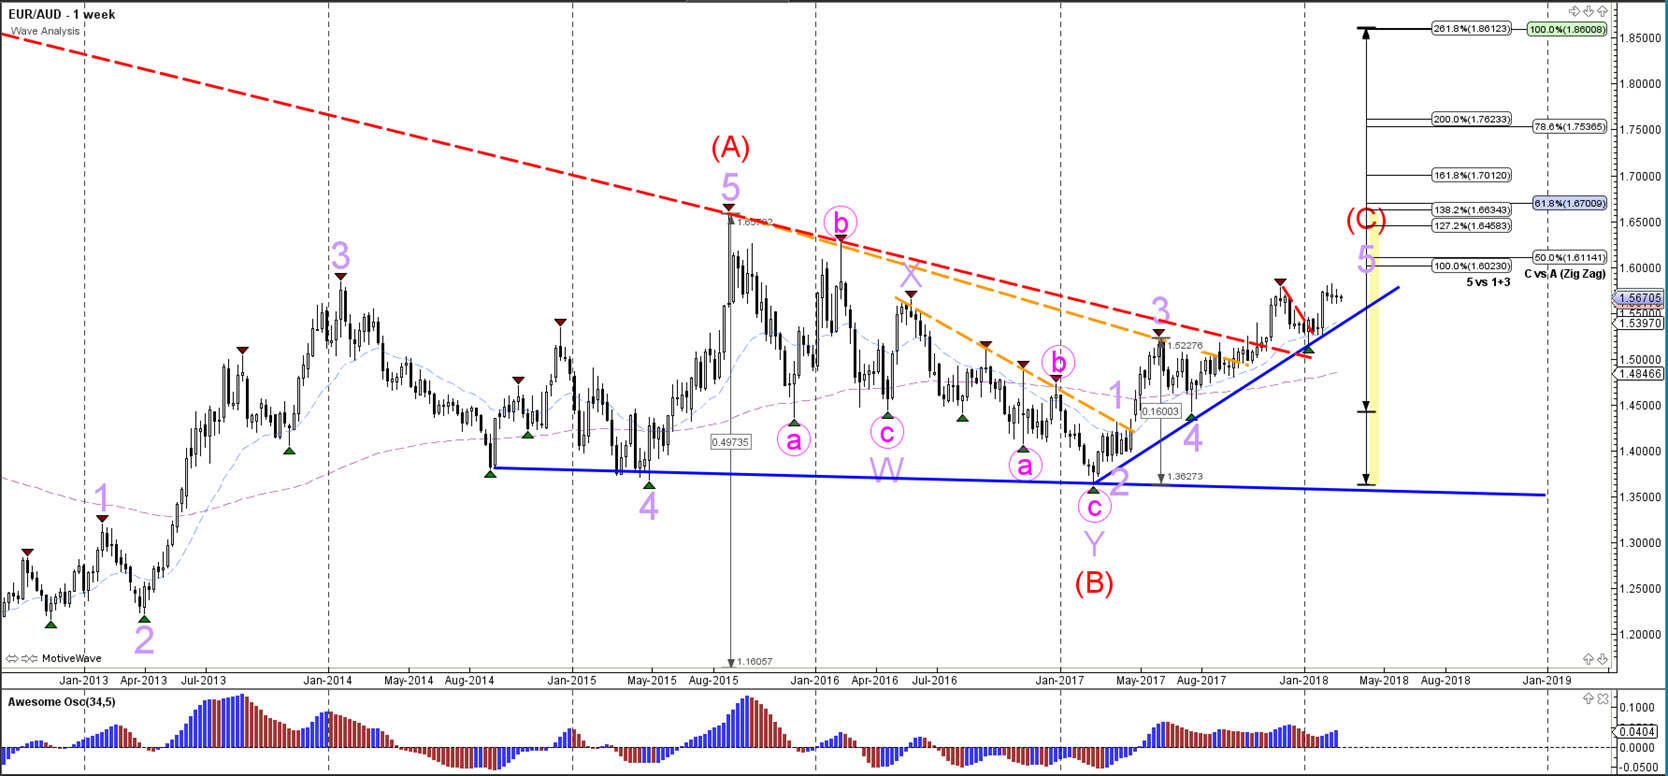 Aus Euro Eur Aud Sideways Pattern Indicates Bullish Potential